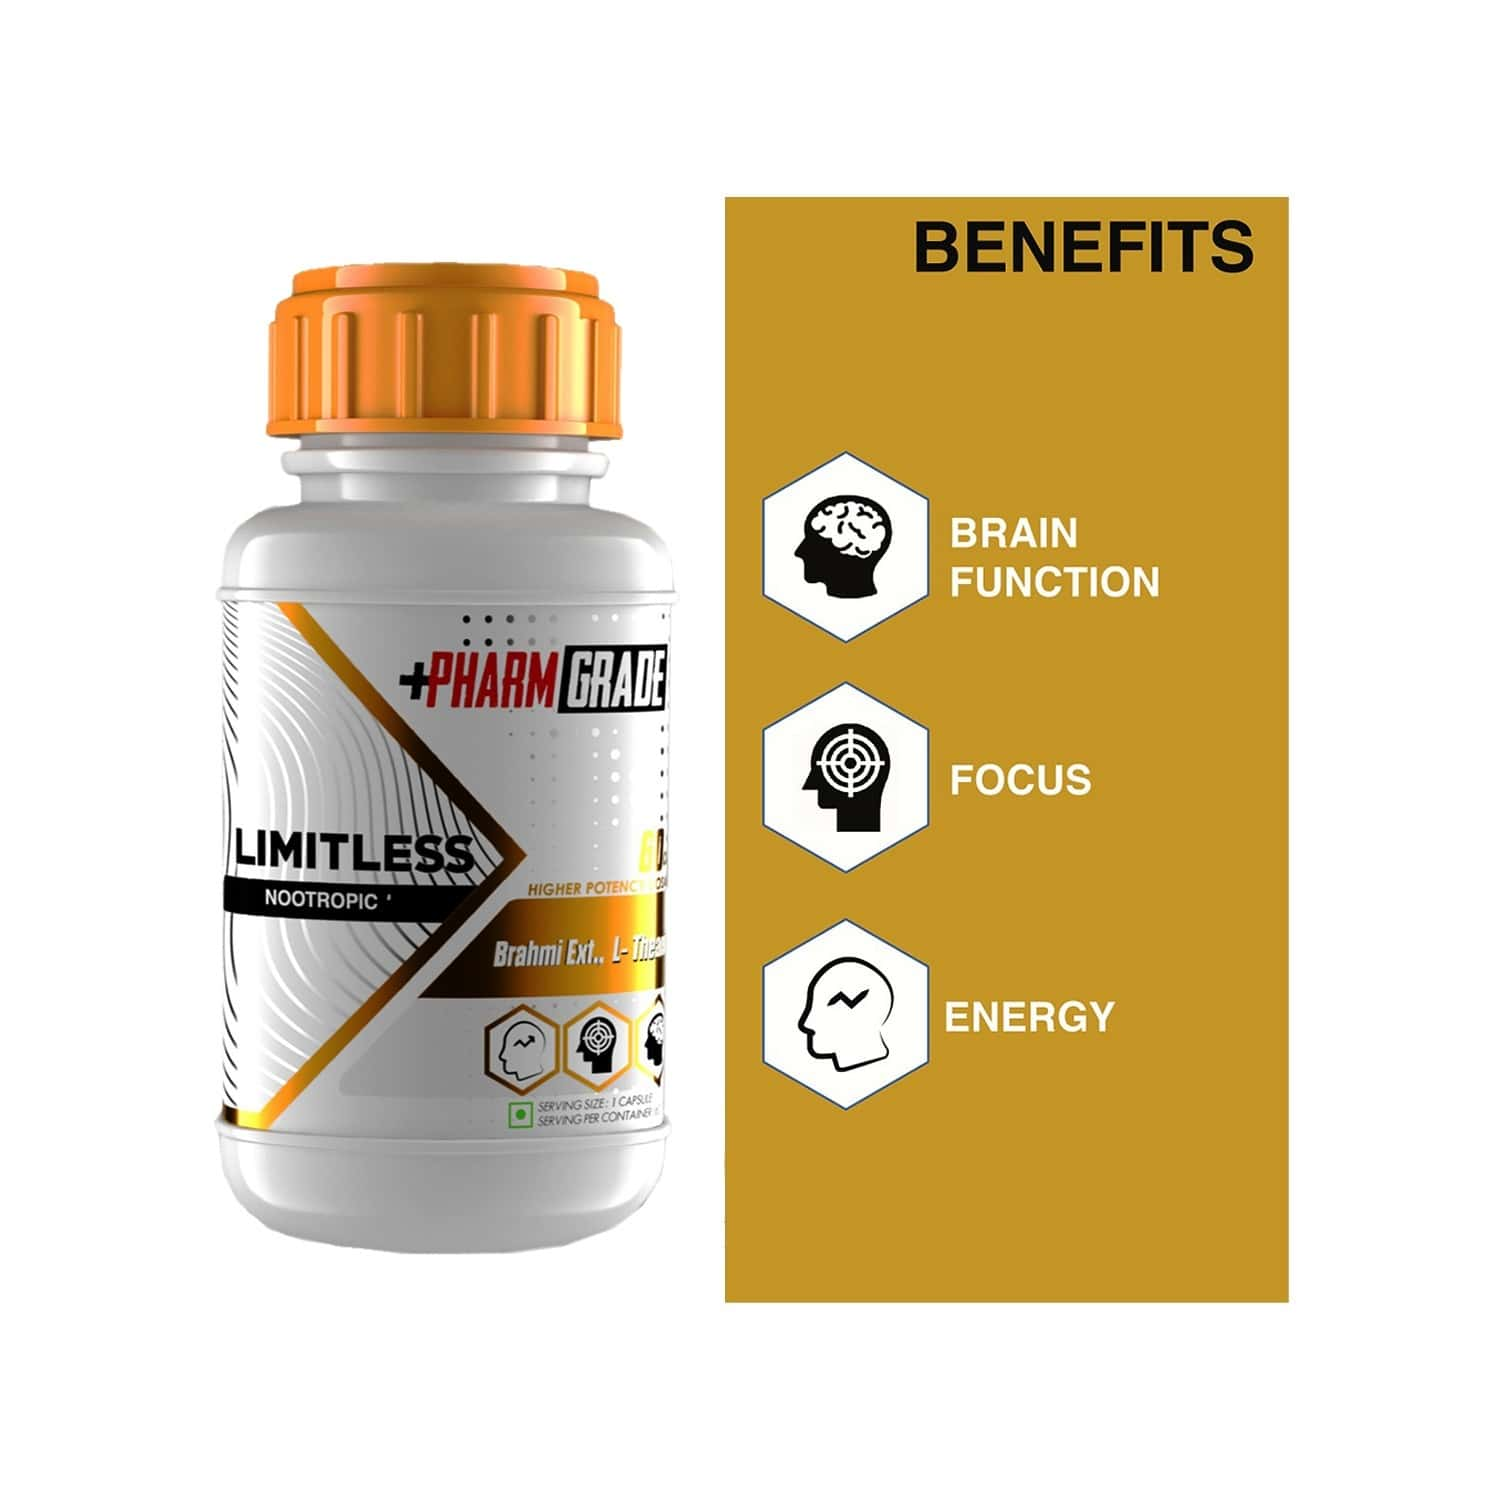 Pharmgrade Limitless Nootropics Brain Booster Supplement - Brahmi Extract For Ultra Focus Supports Memory & Brain Health - 60 Tablets